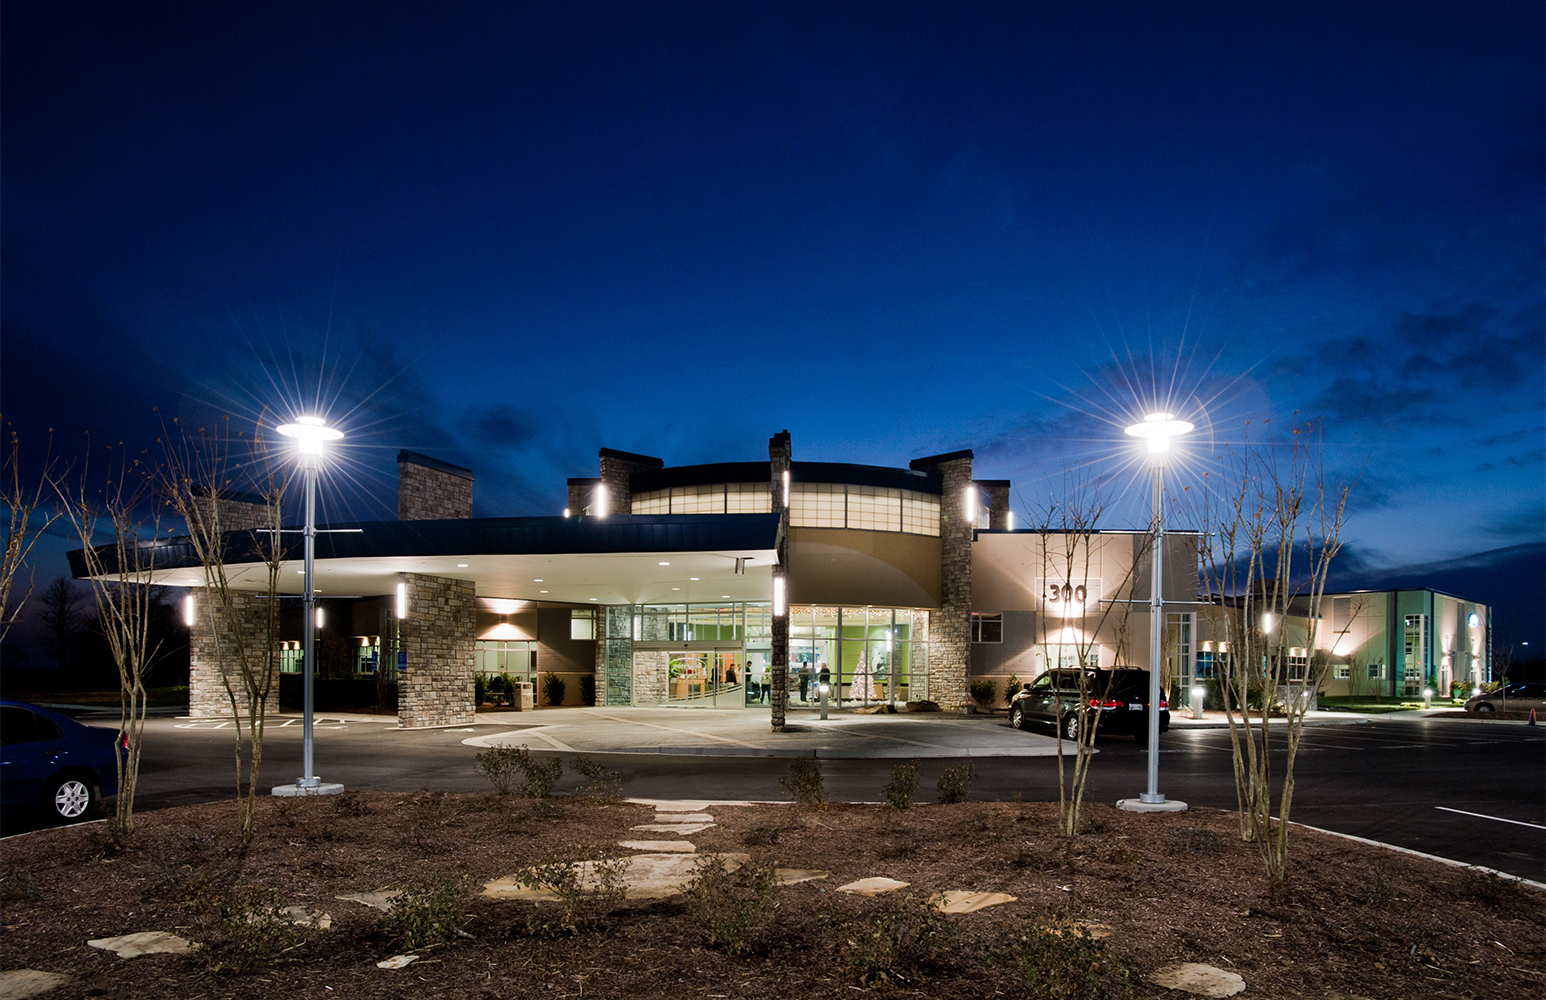 Avatar exterior lighting fixtures on a healthcare building illuminate support columns with clean, even light.